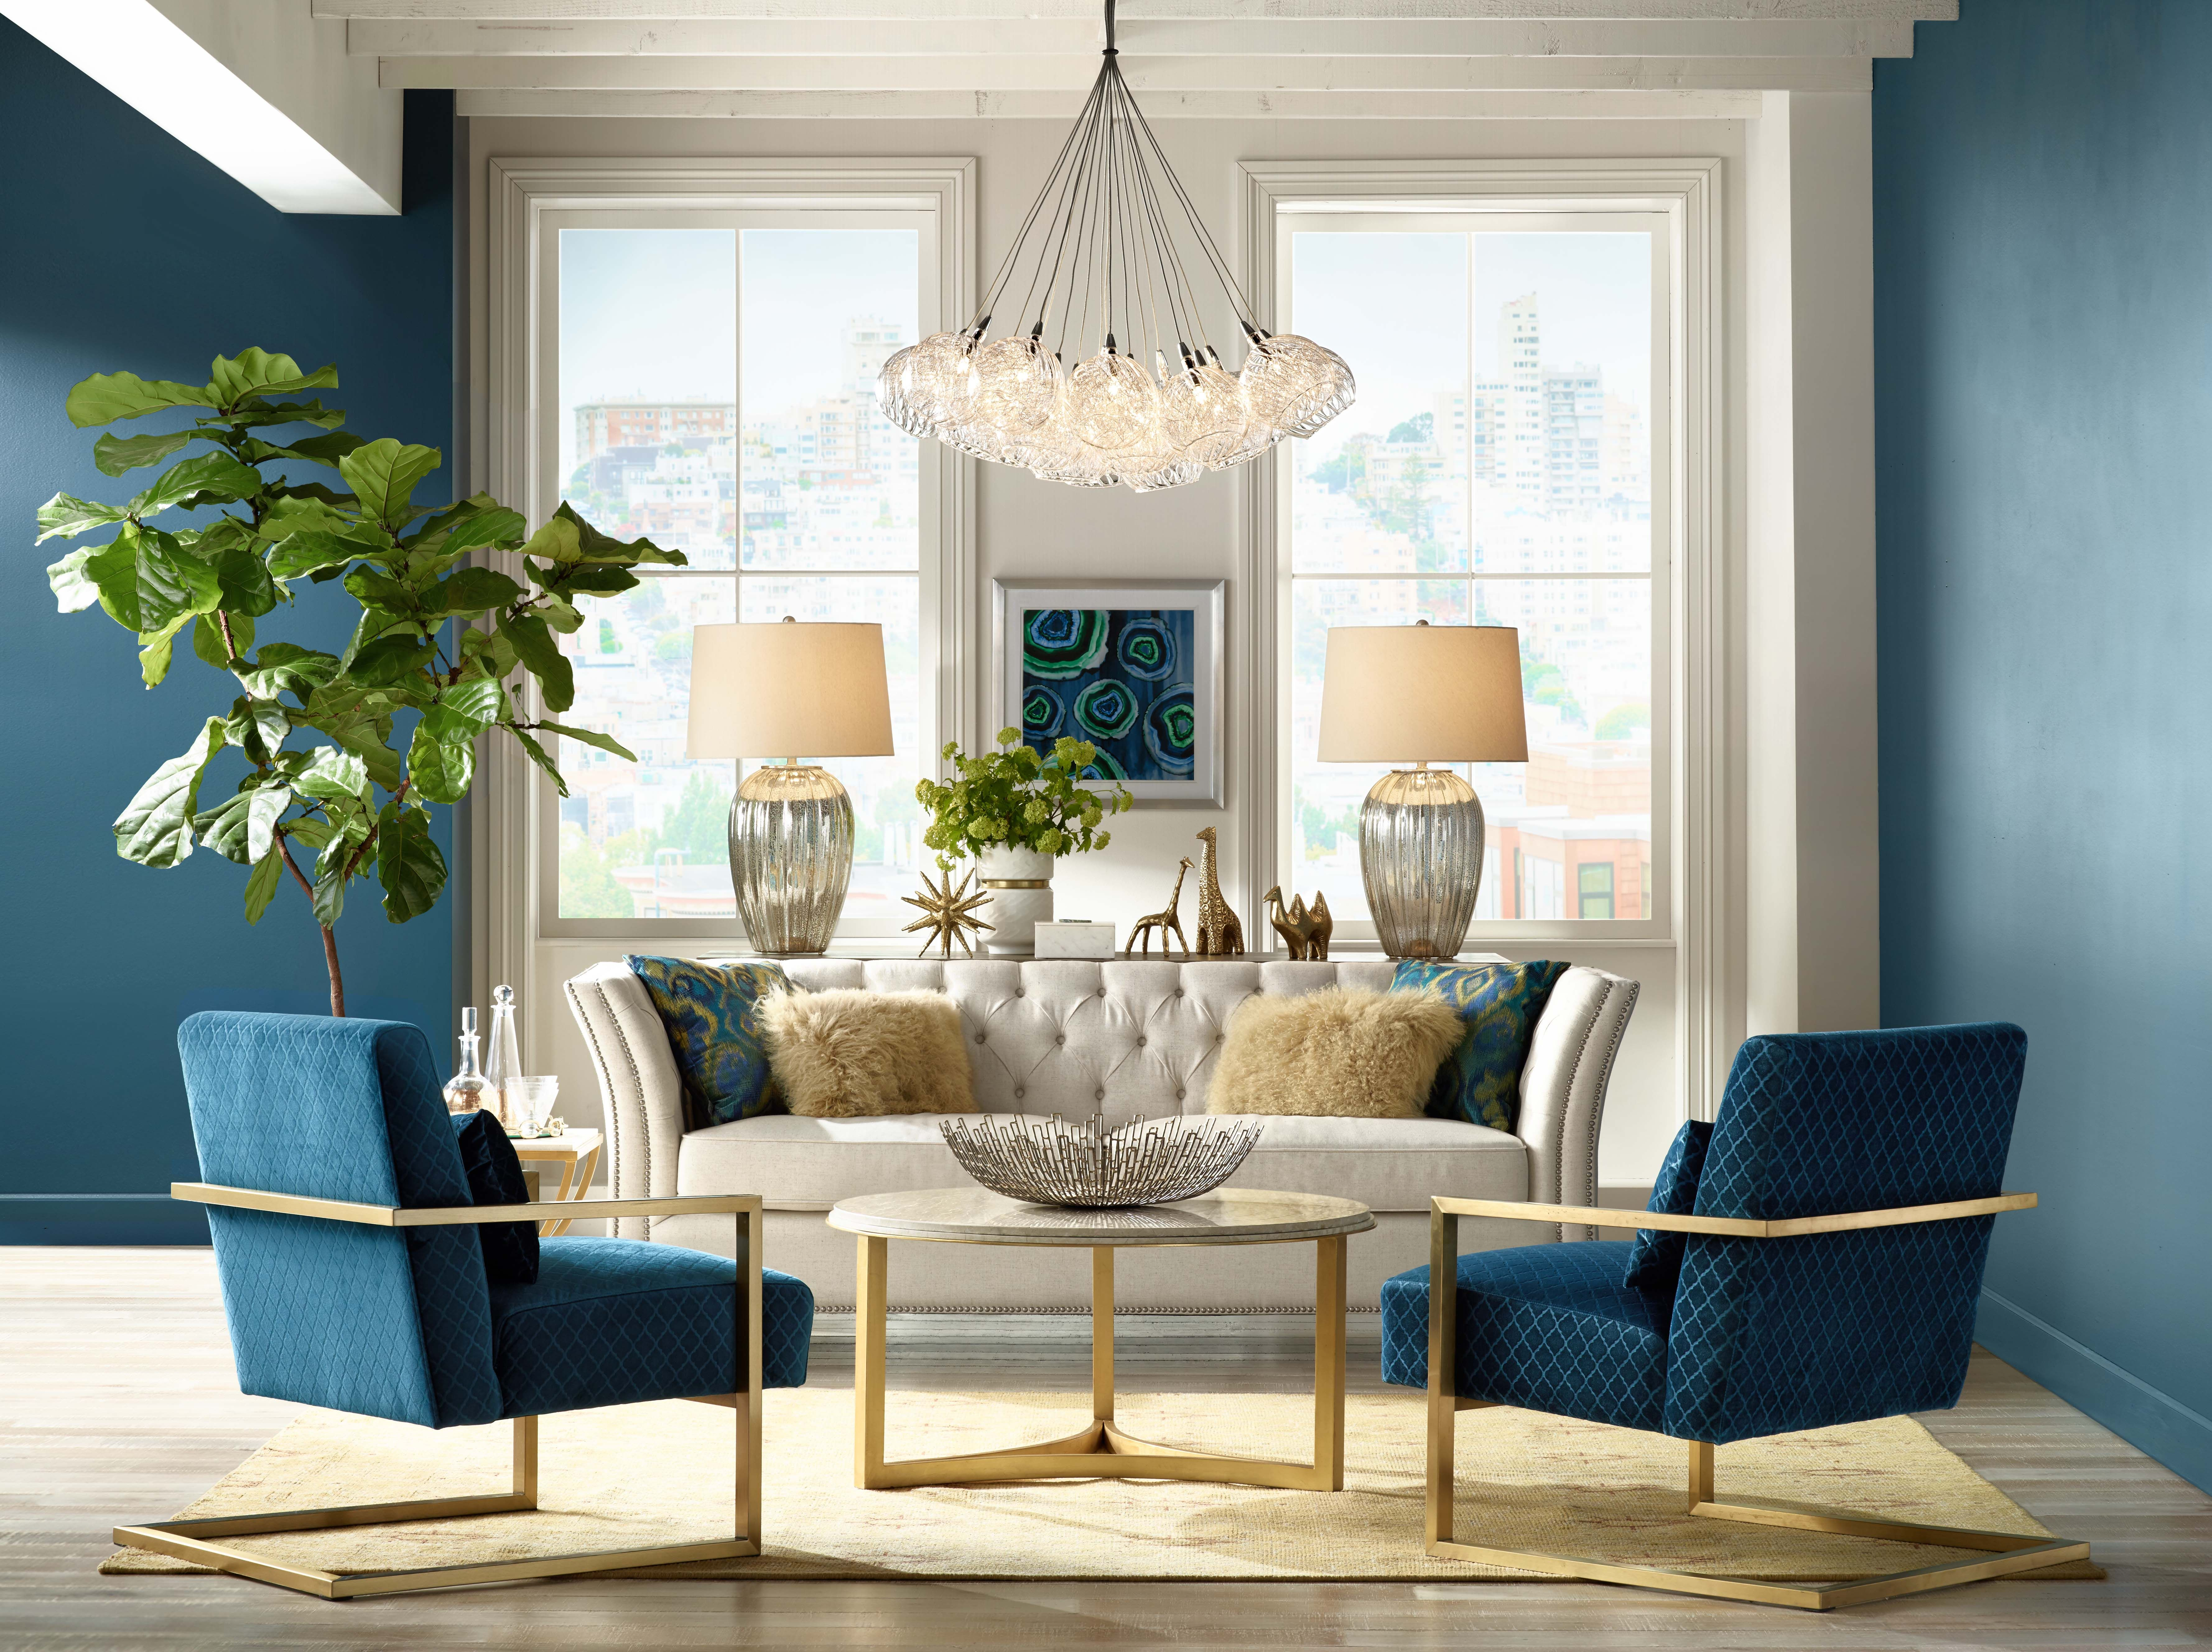 refresh-your-interiors-with-home-decor-accessories-light ...